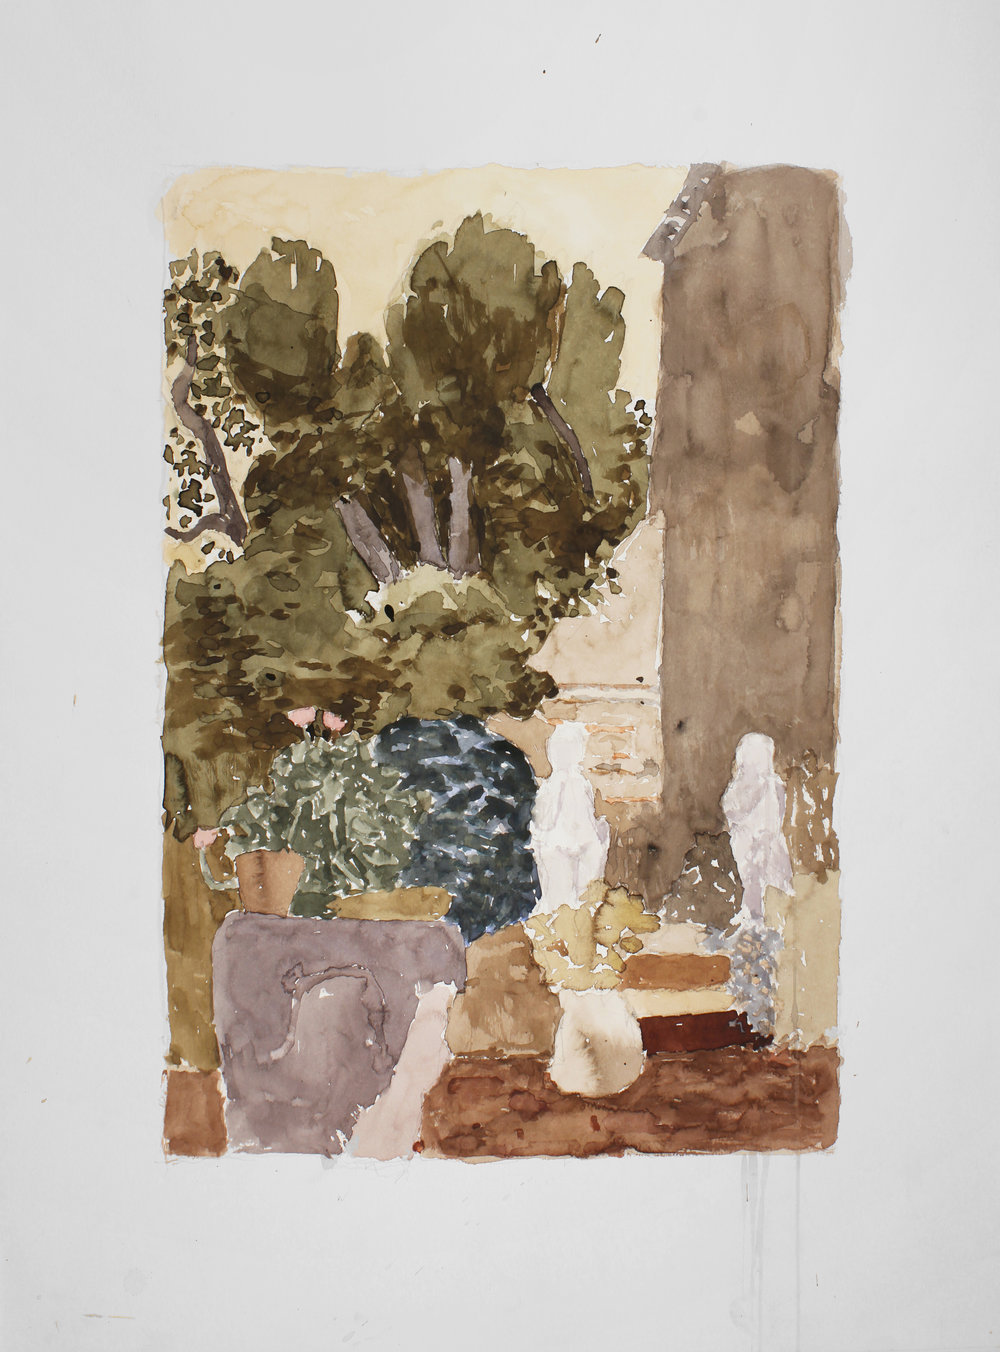 1997_Habsburg_Garden_with_Two_Sculptures_Venice_watercolour_and_pencil_on_paper_30x22in_WPF388.jpg